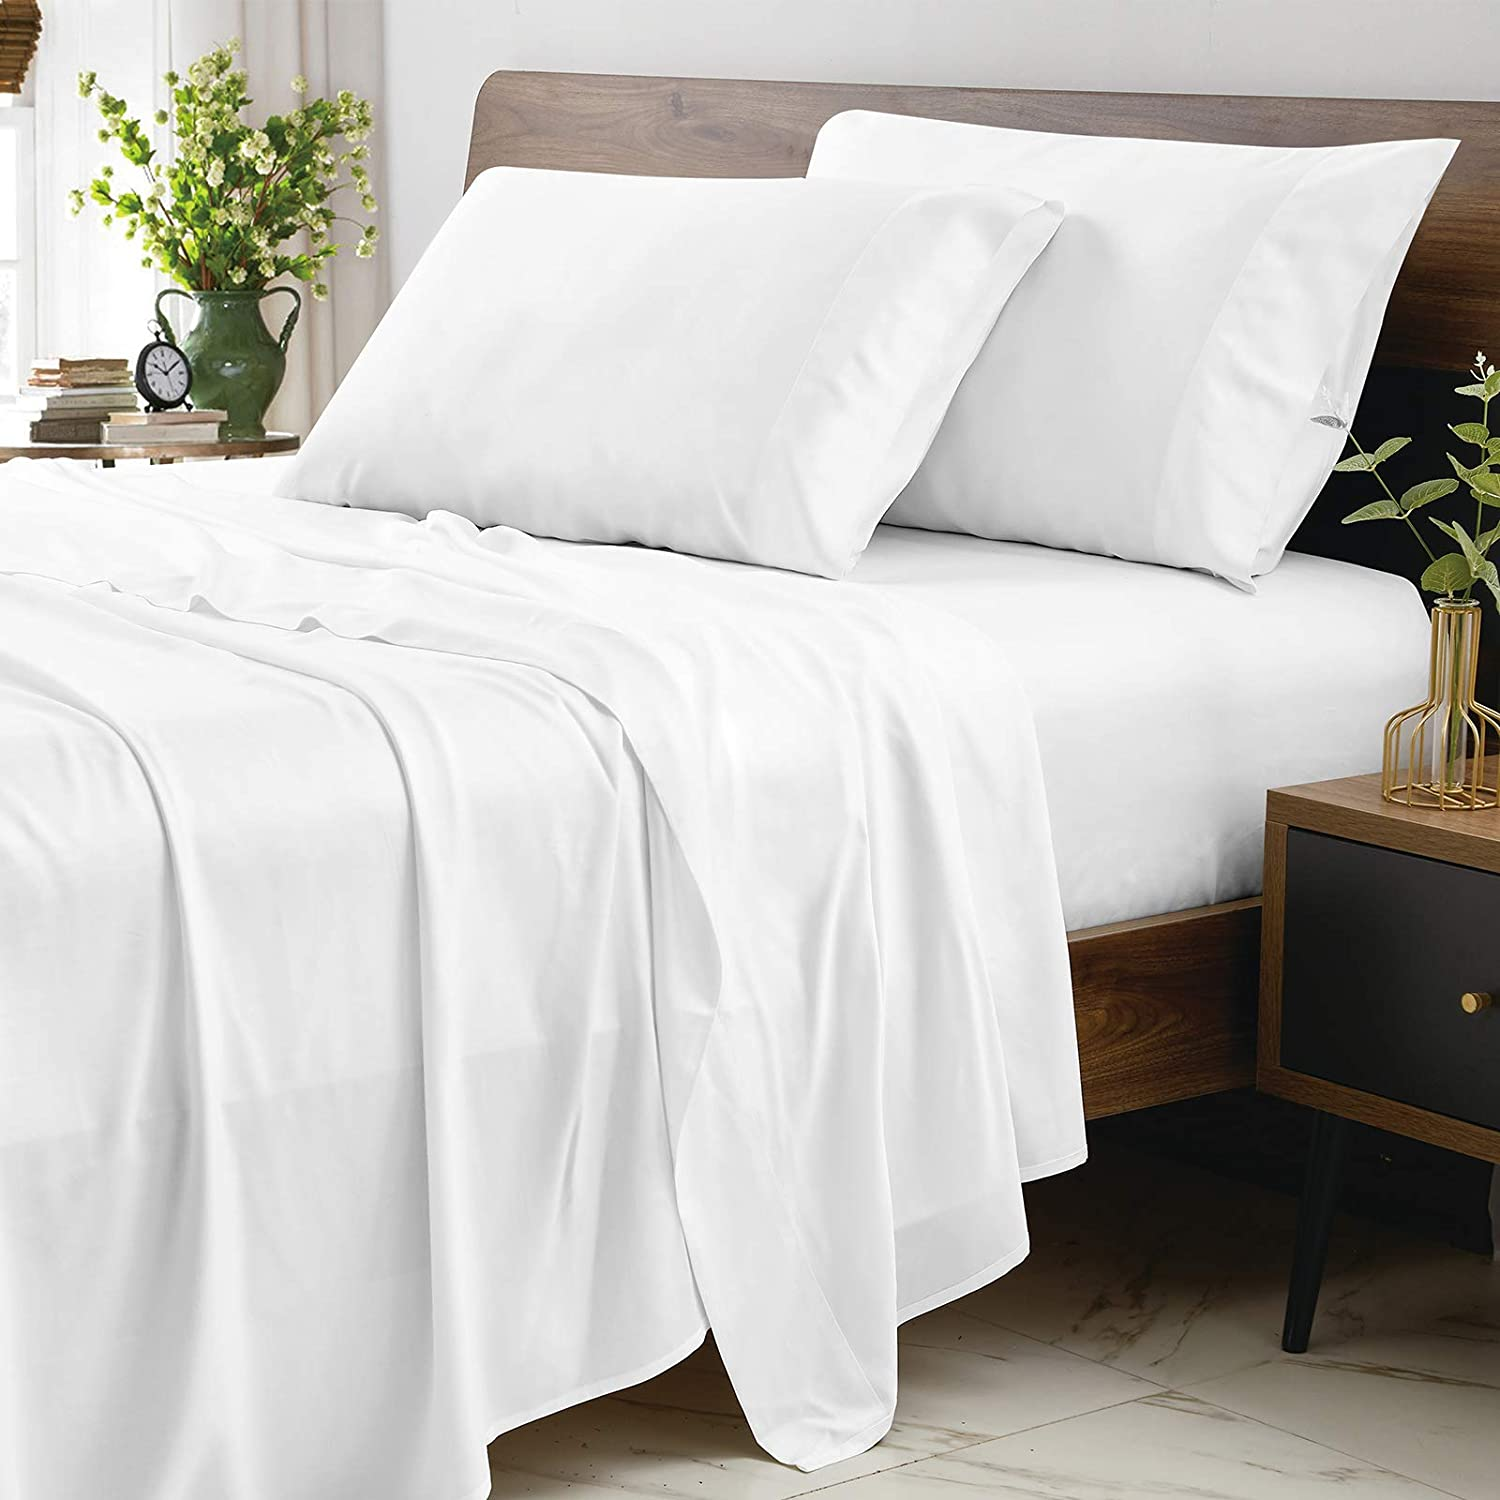 CozyLux 100% Organic Bamboo Sheets Twin Tucson Mall 300 White Thread Co Free shipping on posting reviews Size